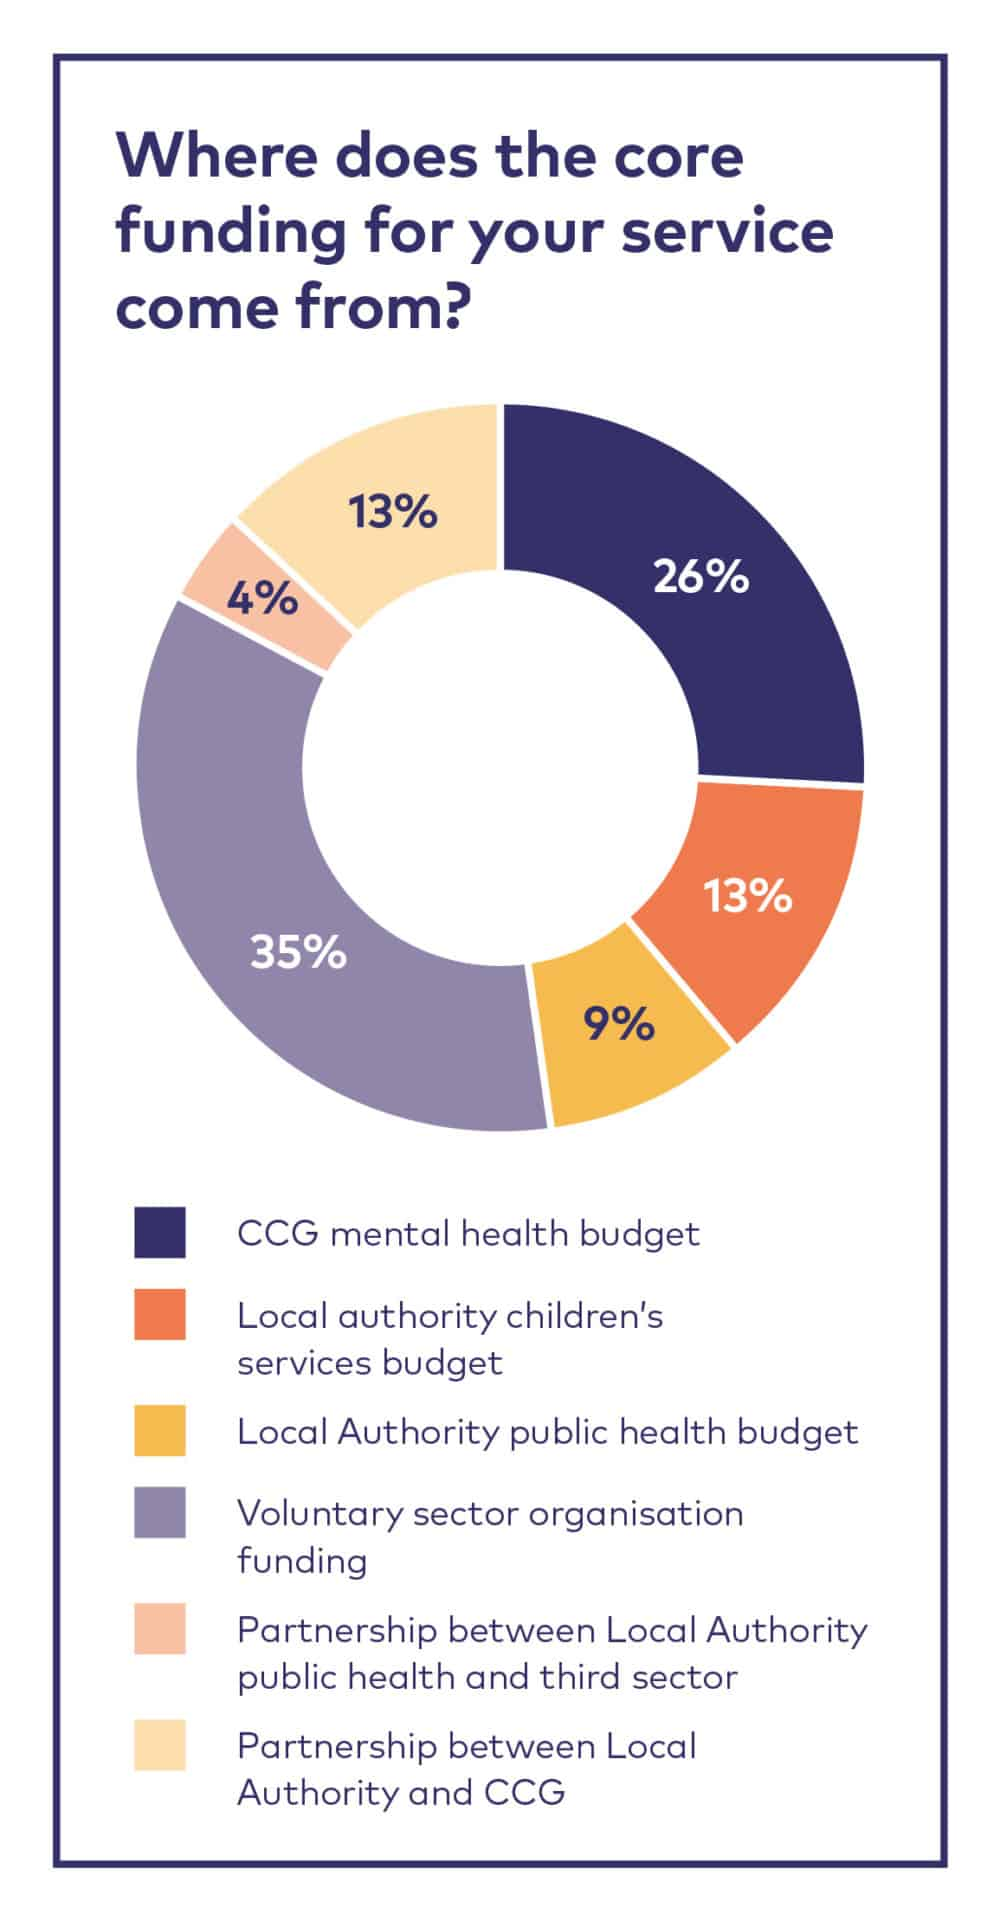 where does core funding for your service come from